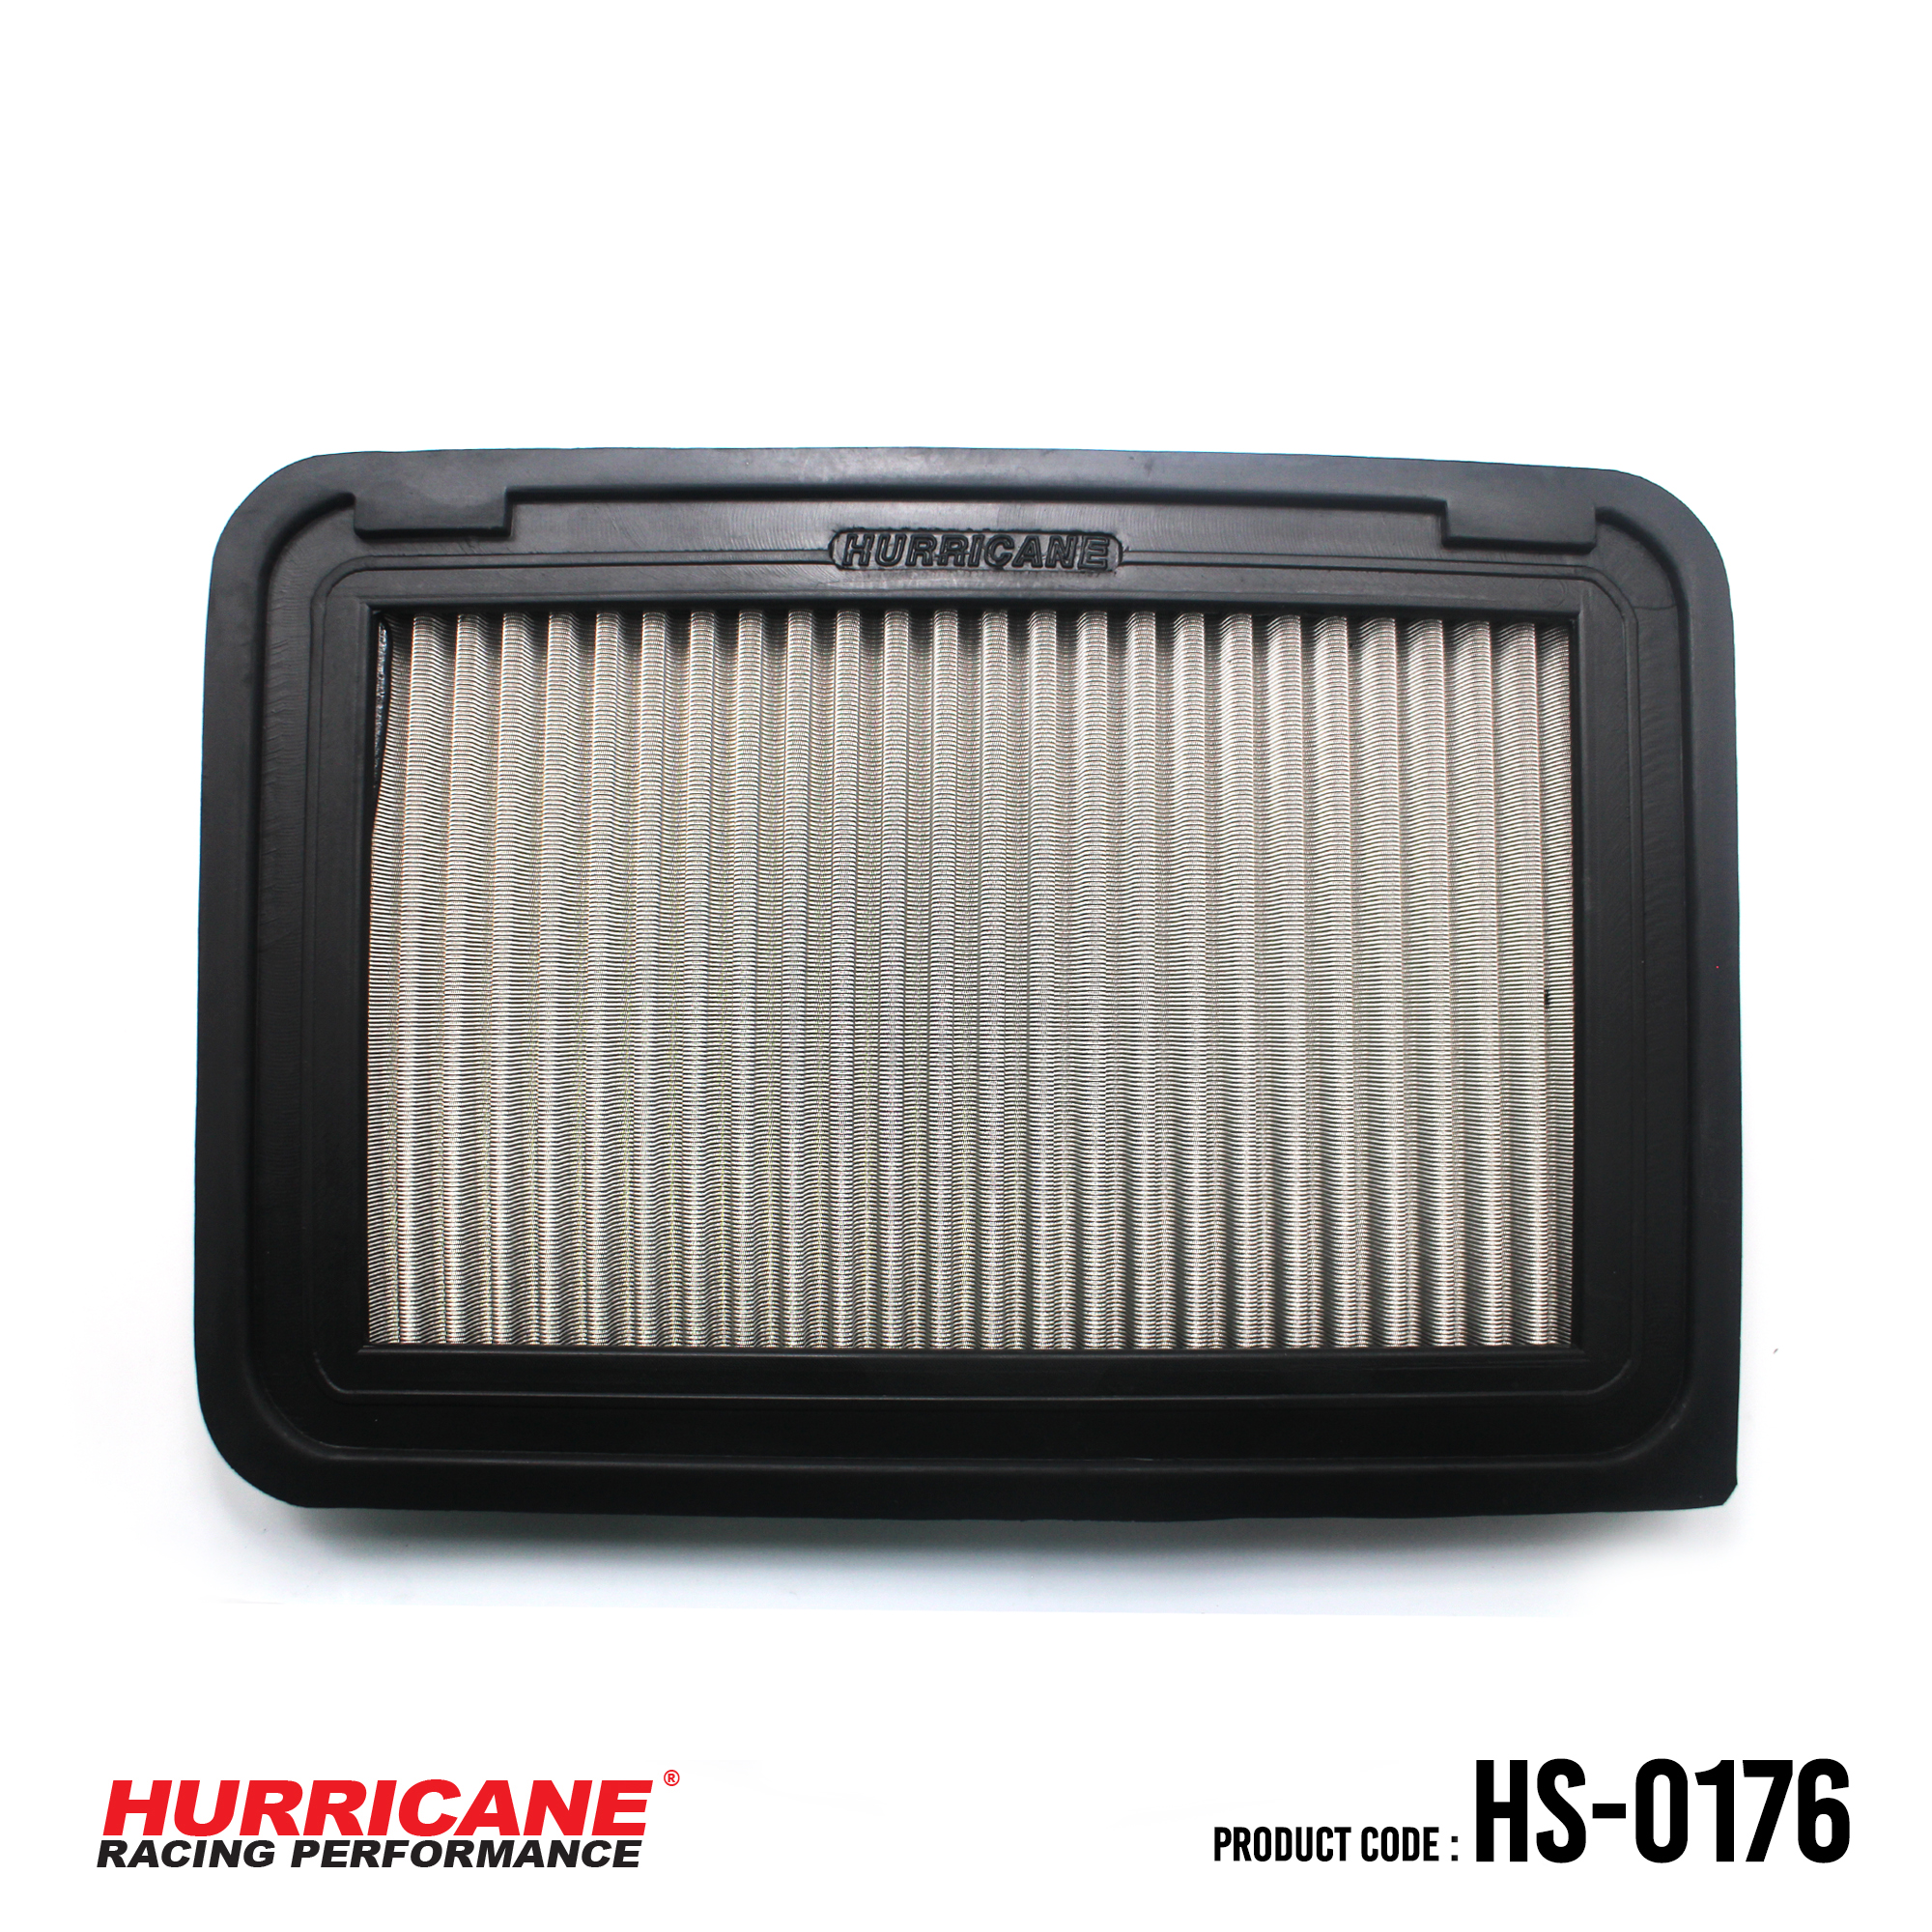 HURRICANE STAINLESS STEEL AIR FILTER FOR HS-0176 Toyota